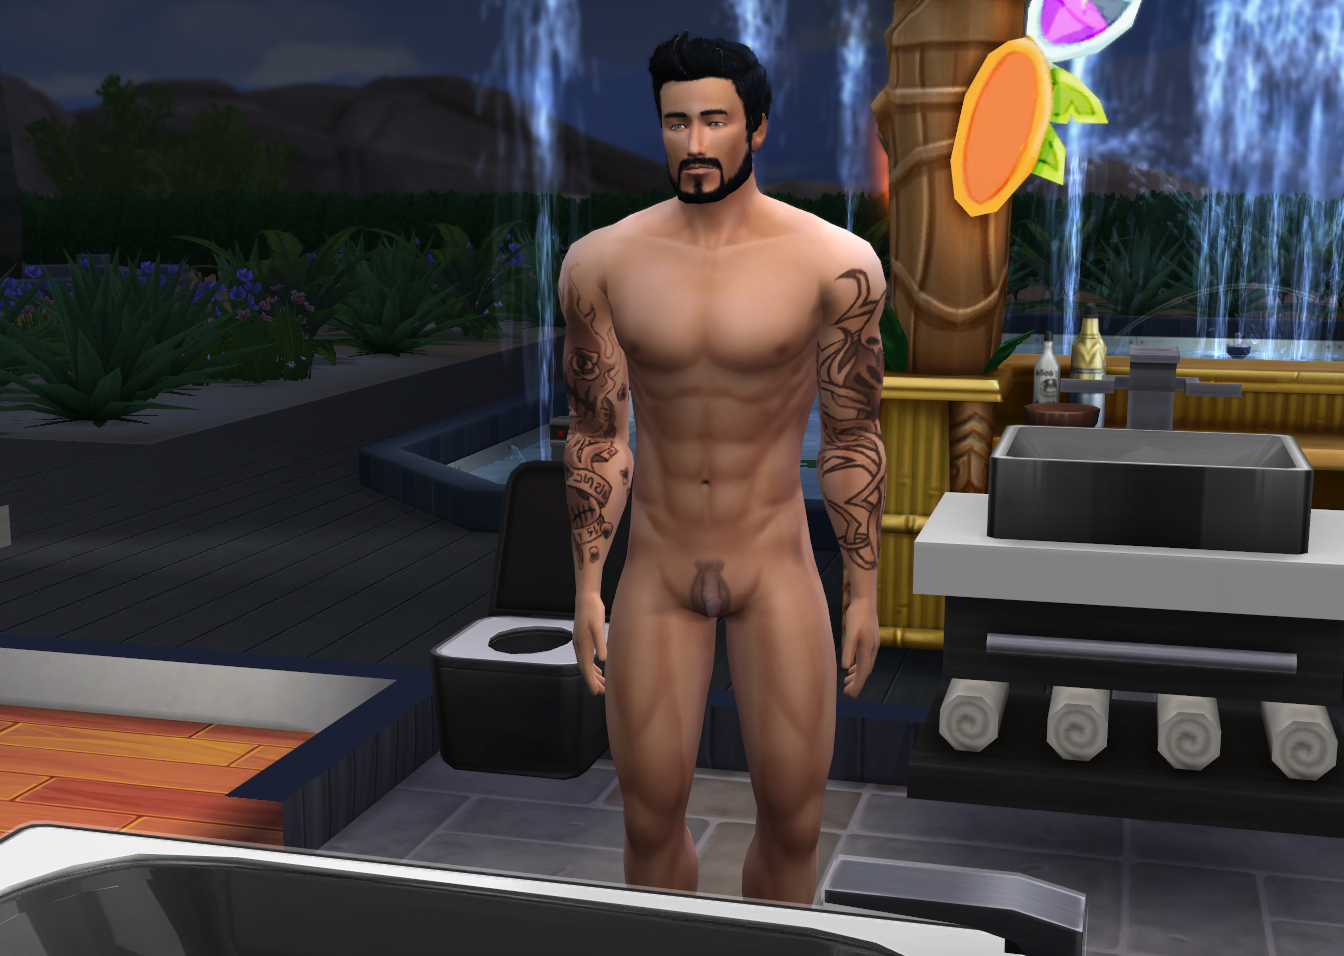 The sims 4 hairy pussy nude video